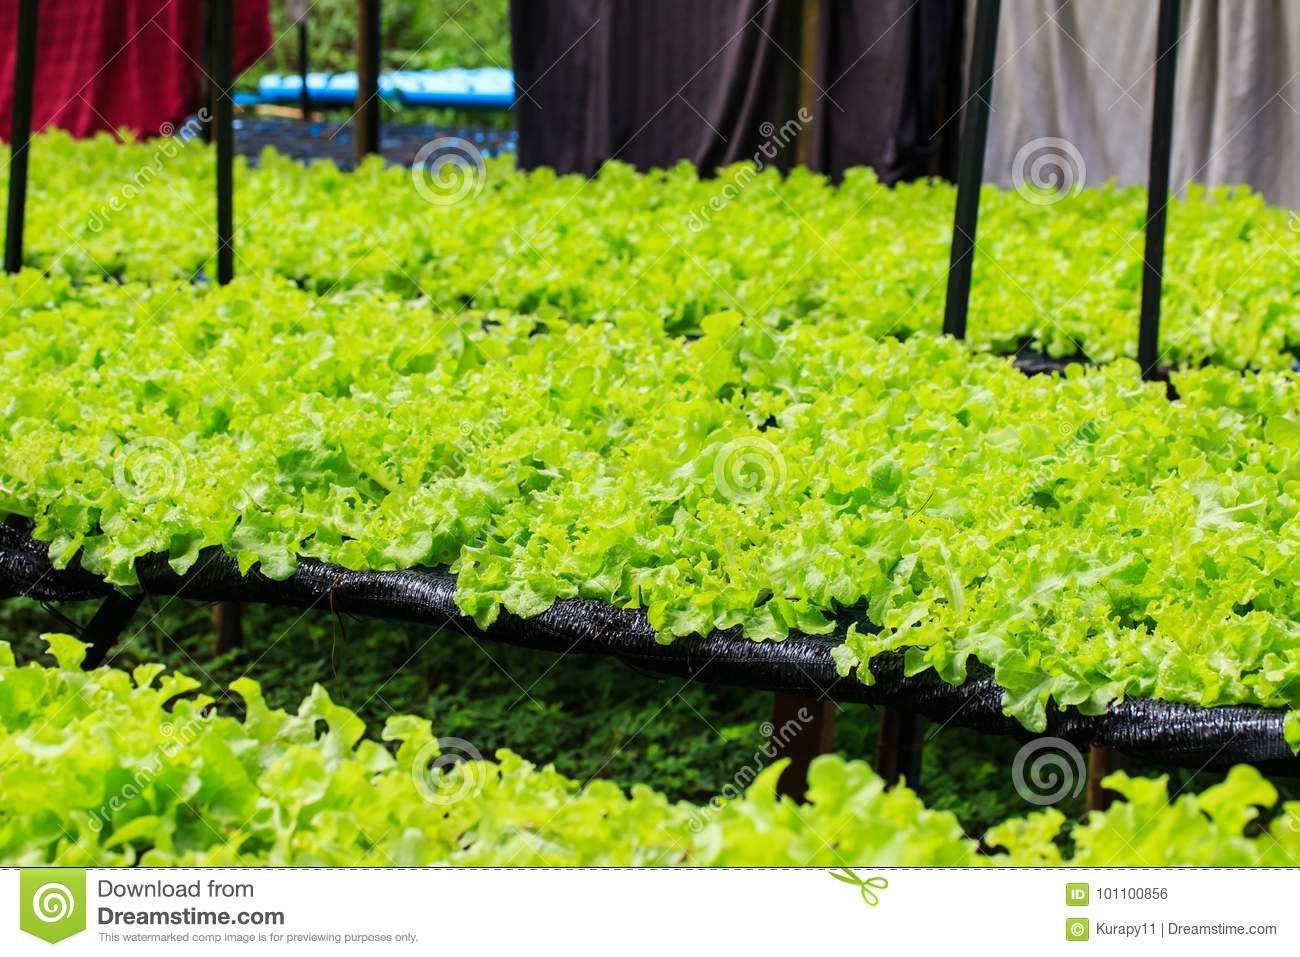 Hydroponic vegetables growing.